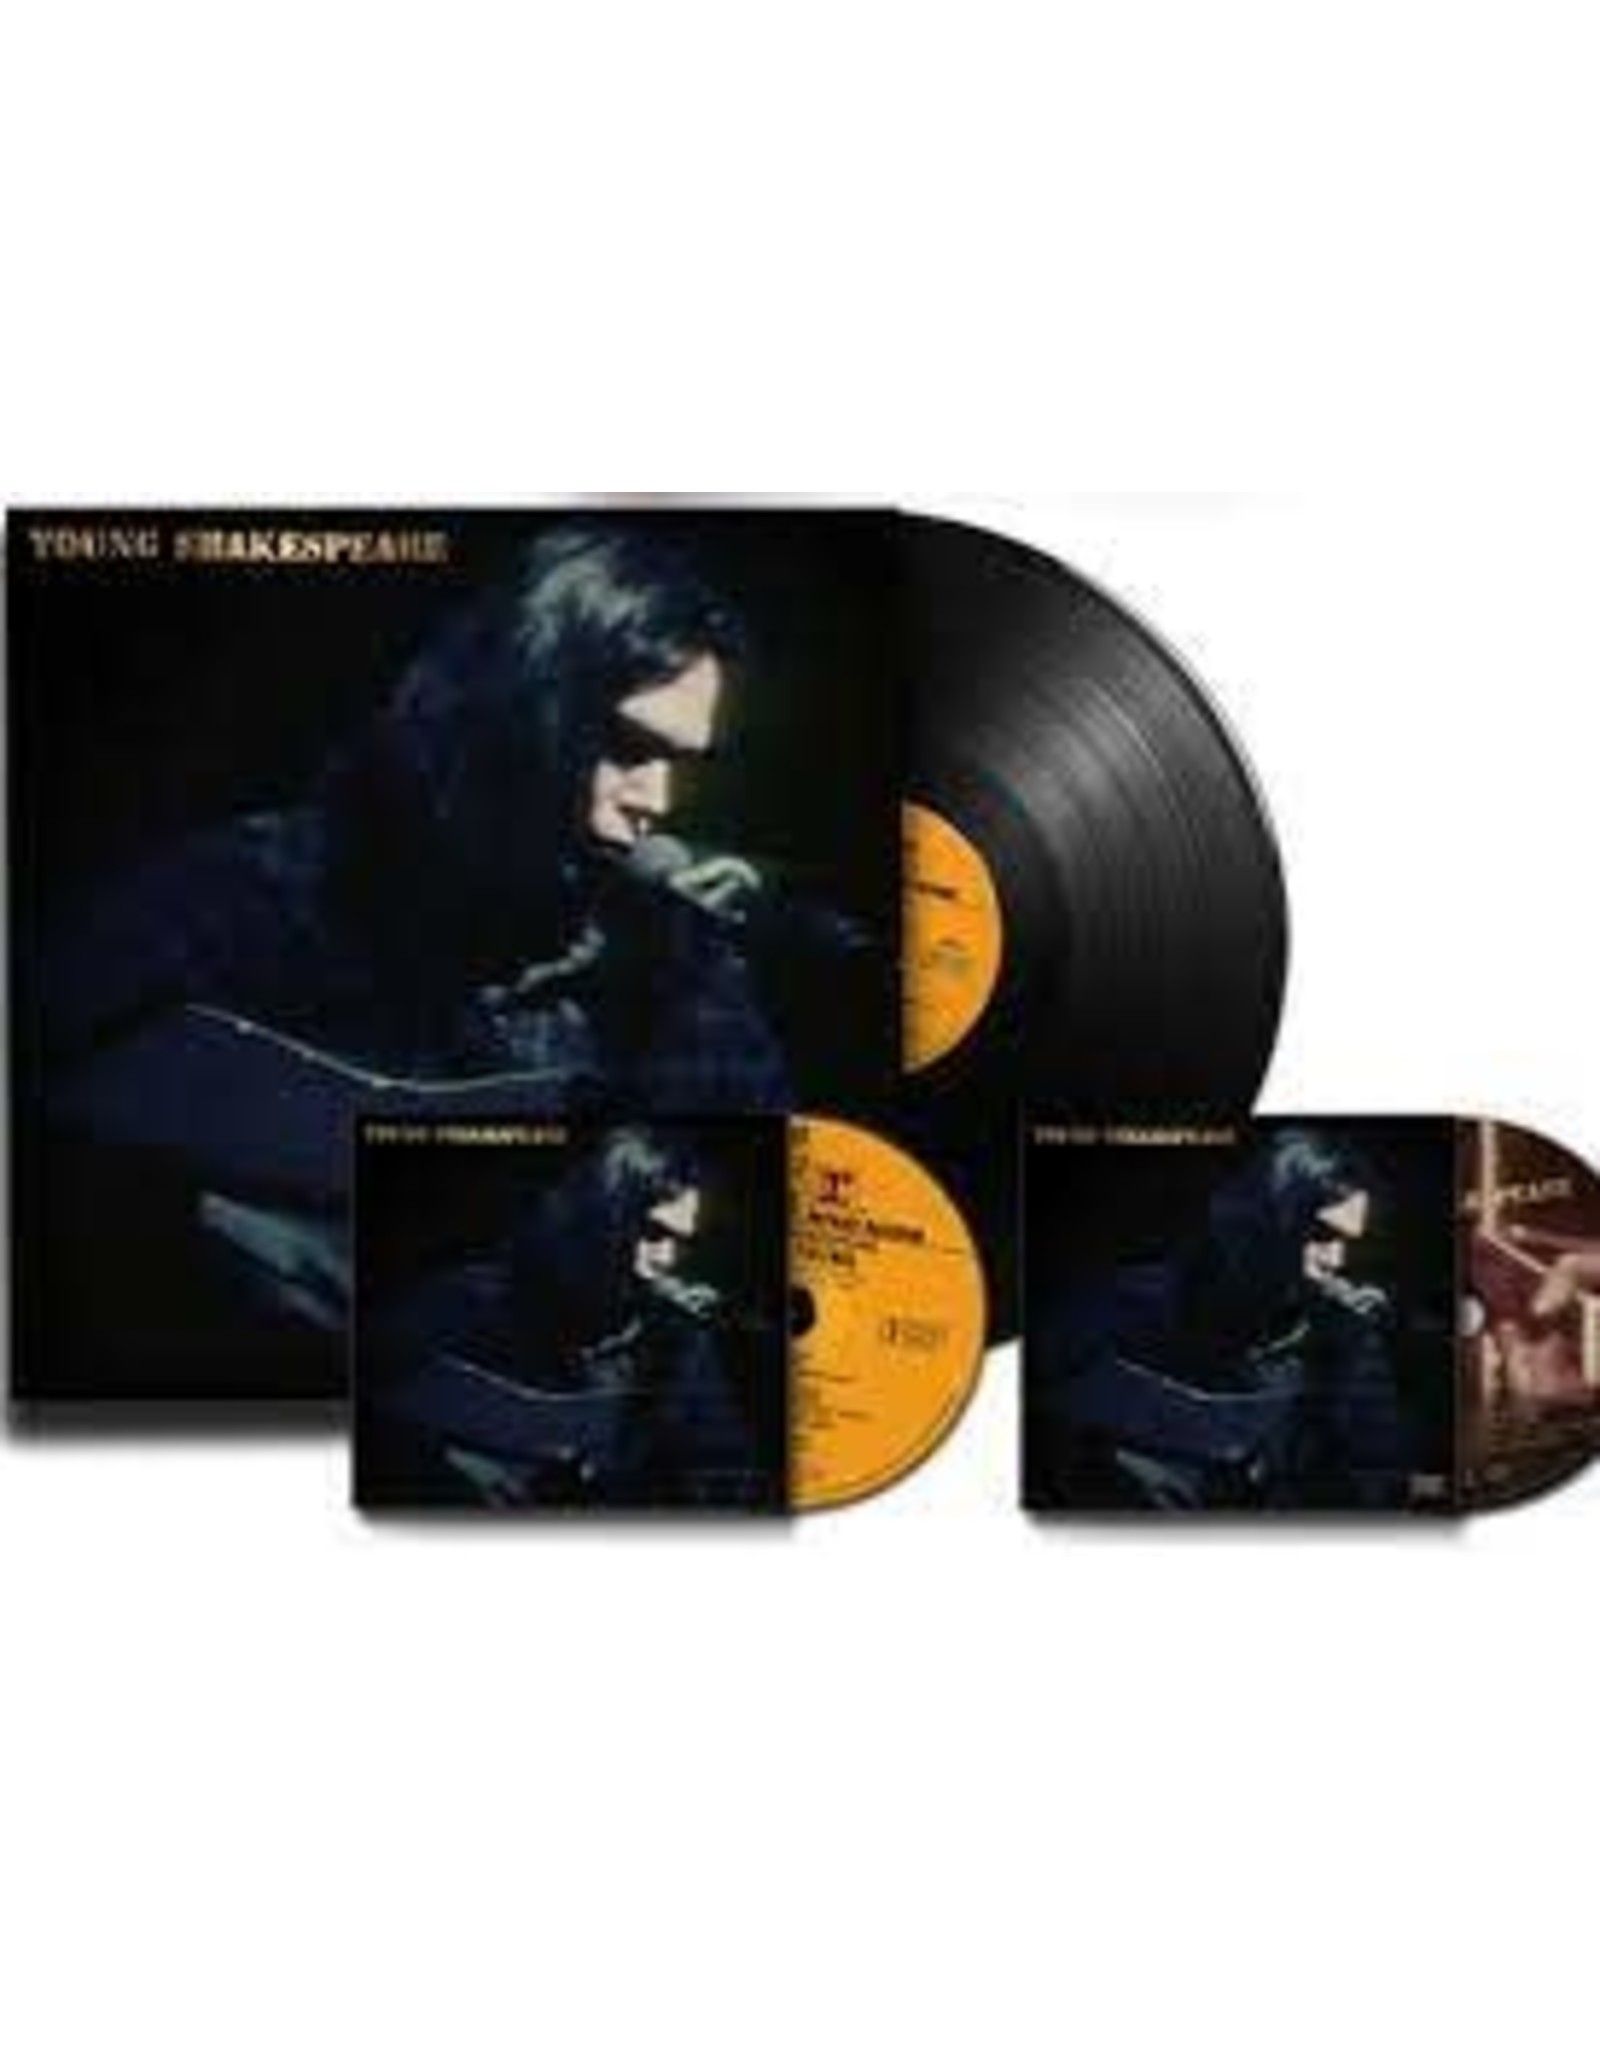 Young, Neil - Young Shakespeare (DLX Edition ) LP CD DVD